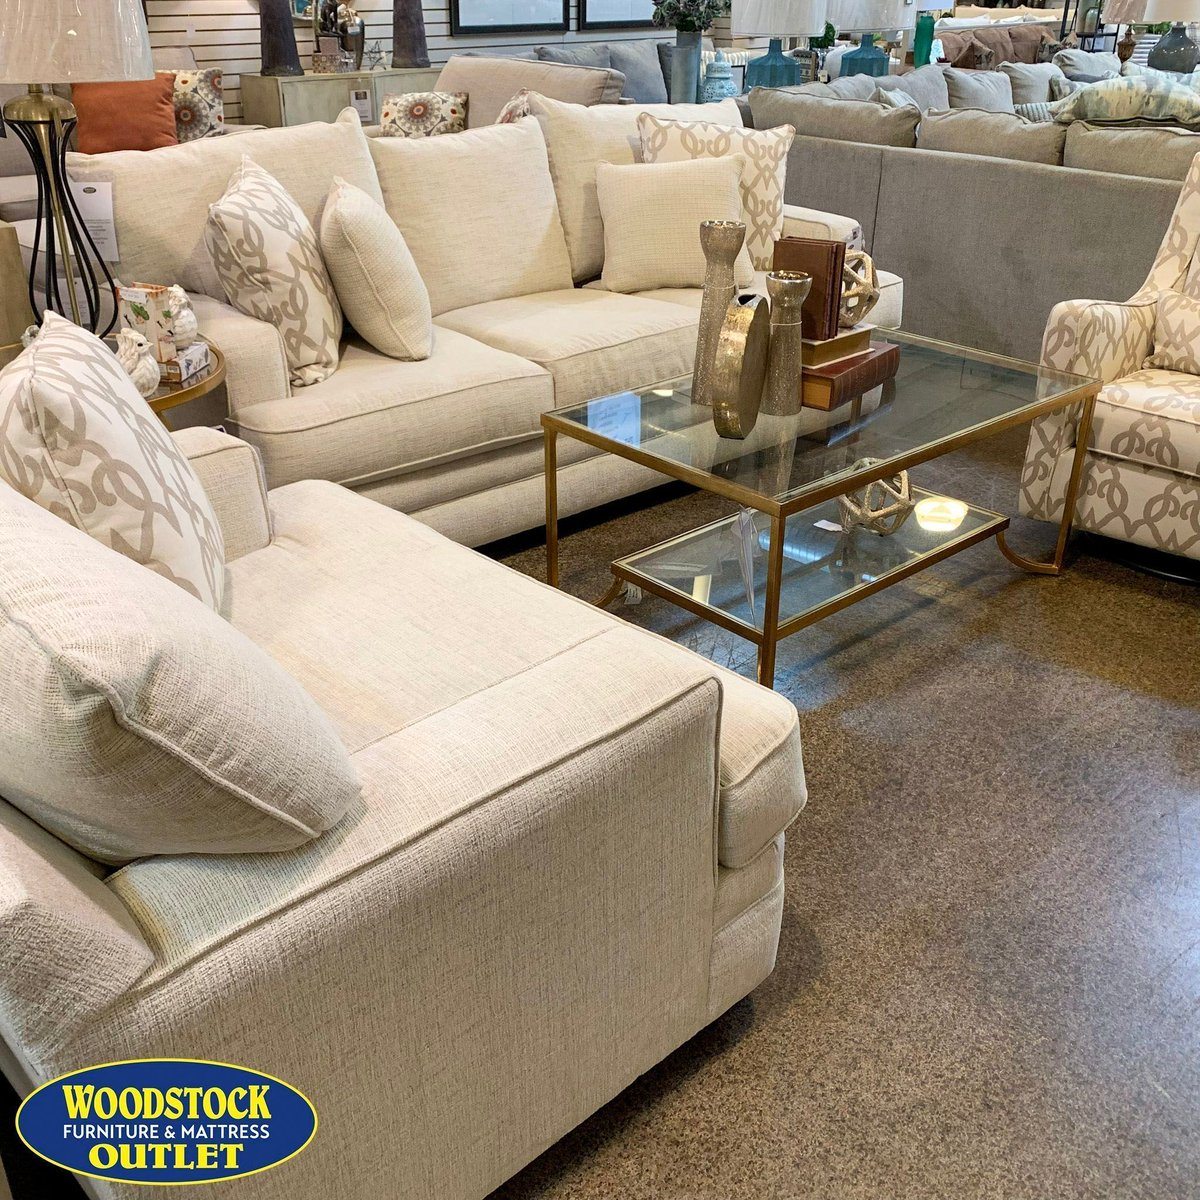 "Woodstock Furniture & Mattress Outlet على تويتر: ""The Chadwick"